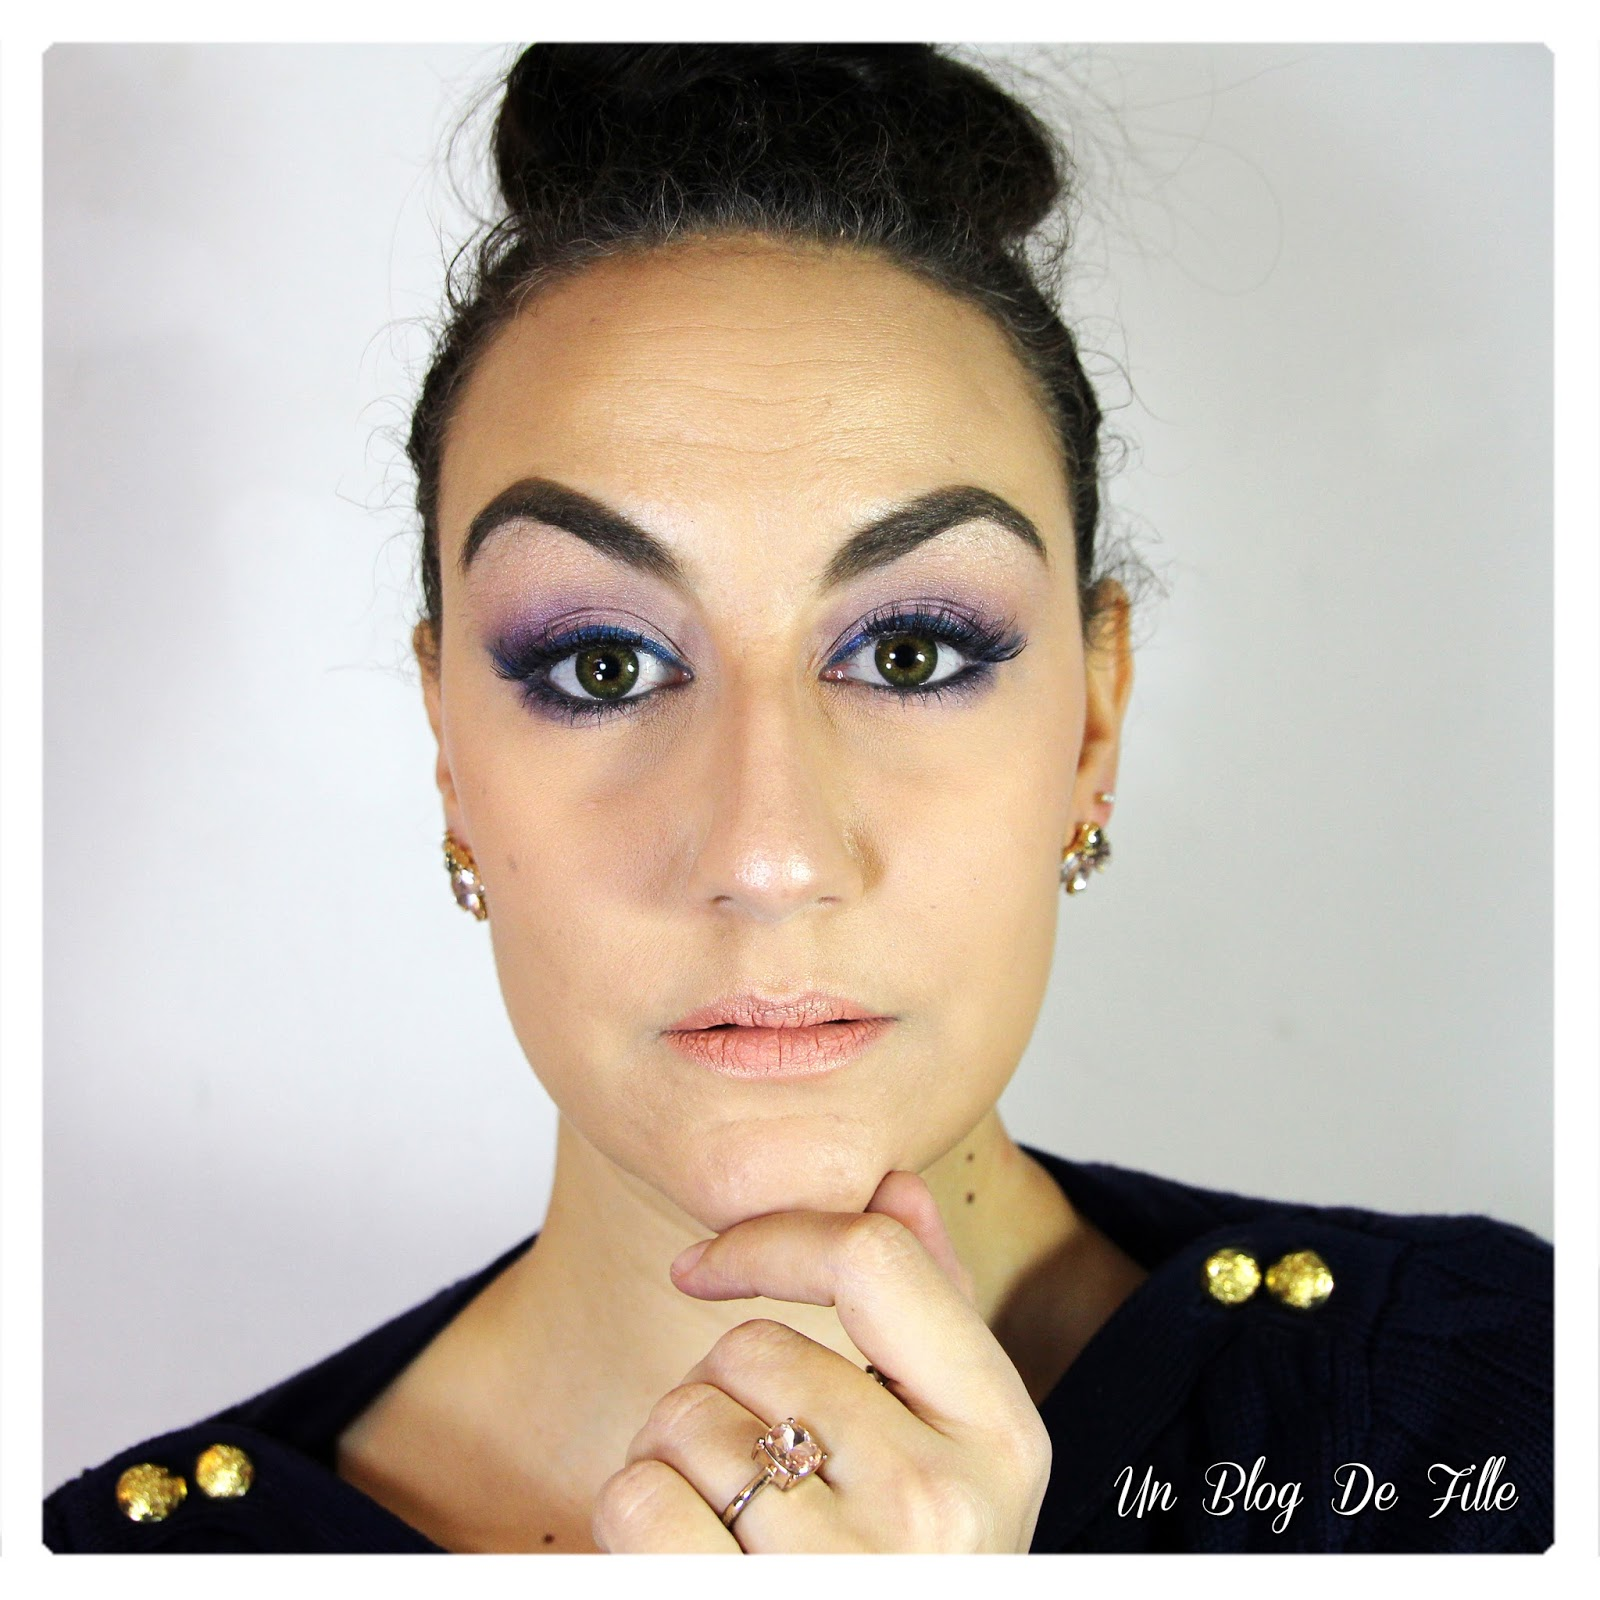 https://unblogdefille.blogspot.fr/2018/03/maquillage-degrade-de-violet-et-liner.html